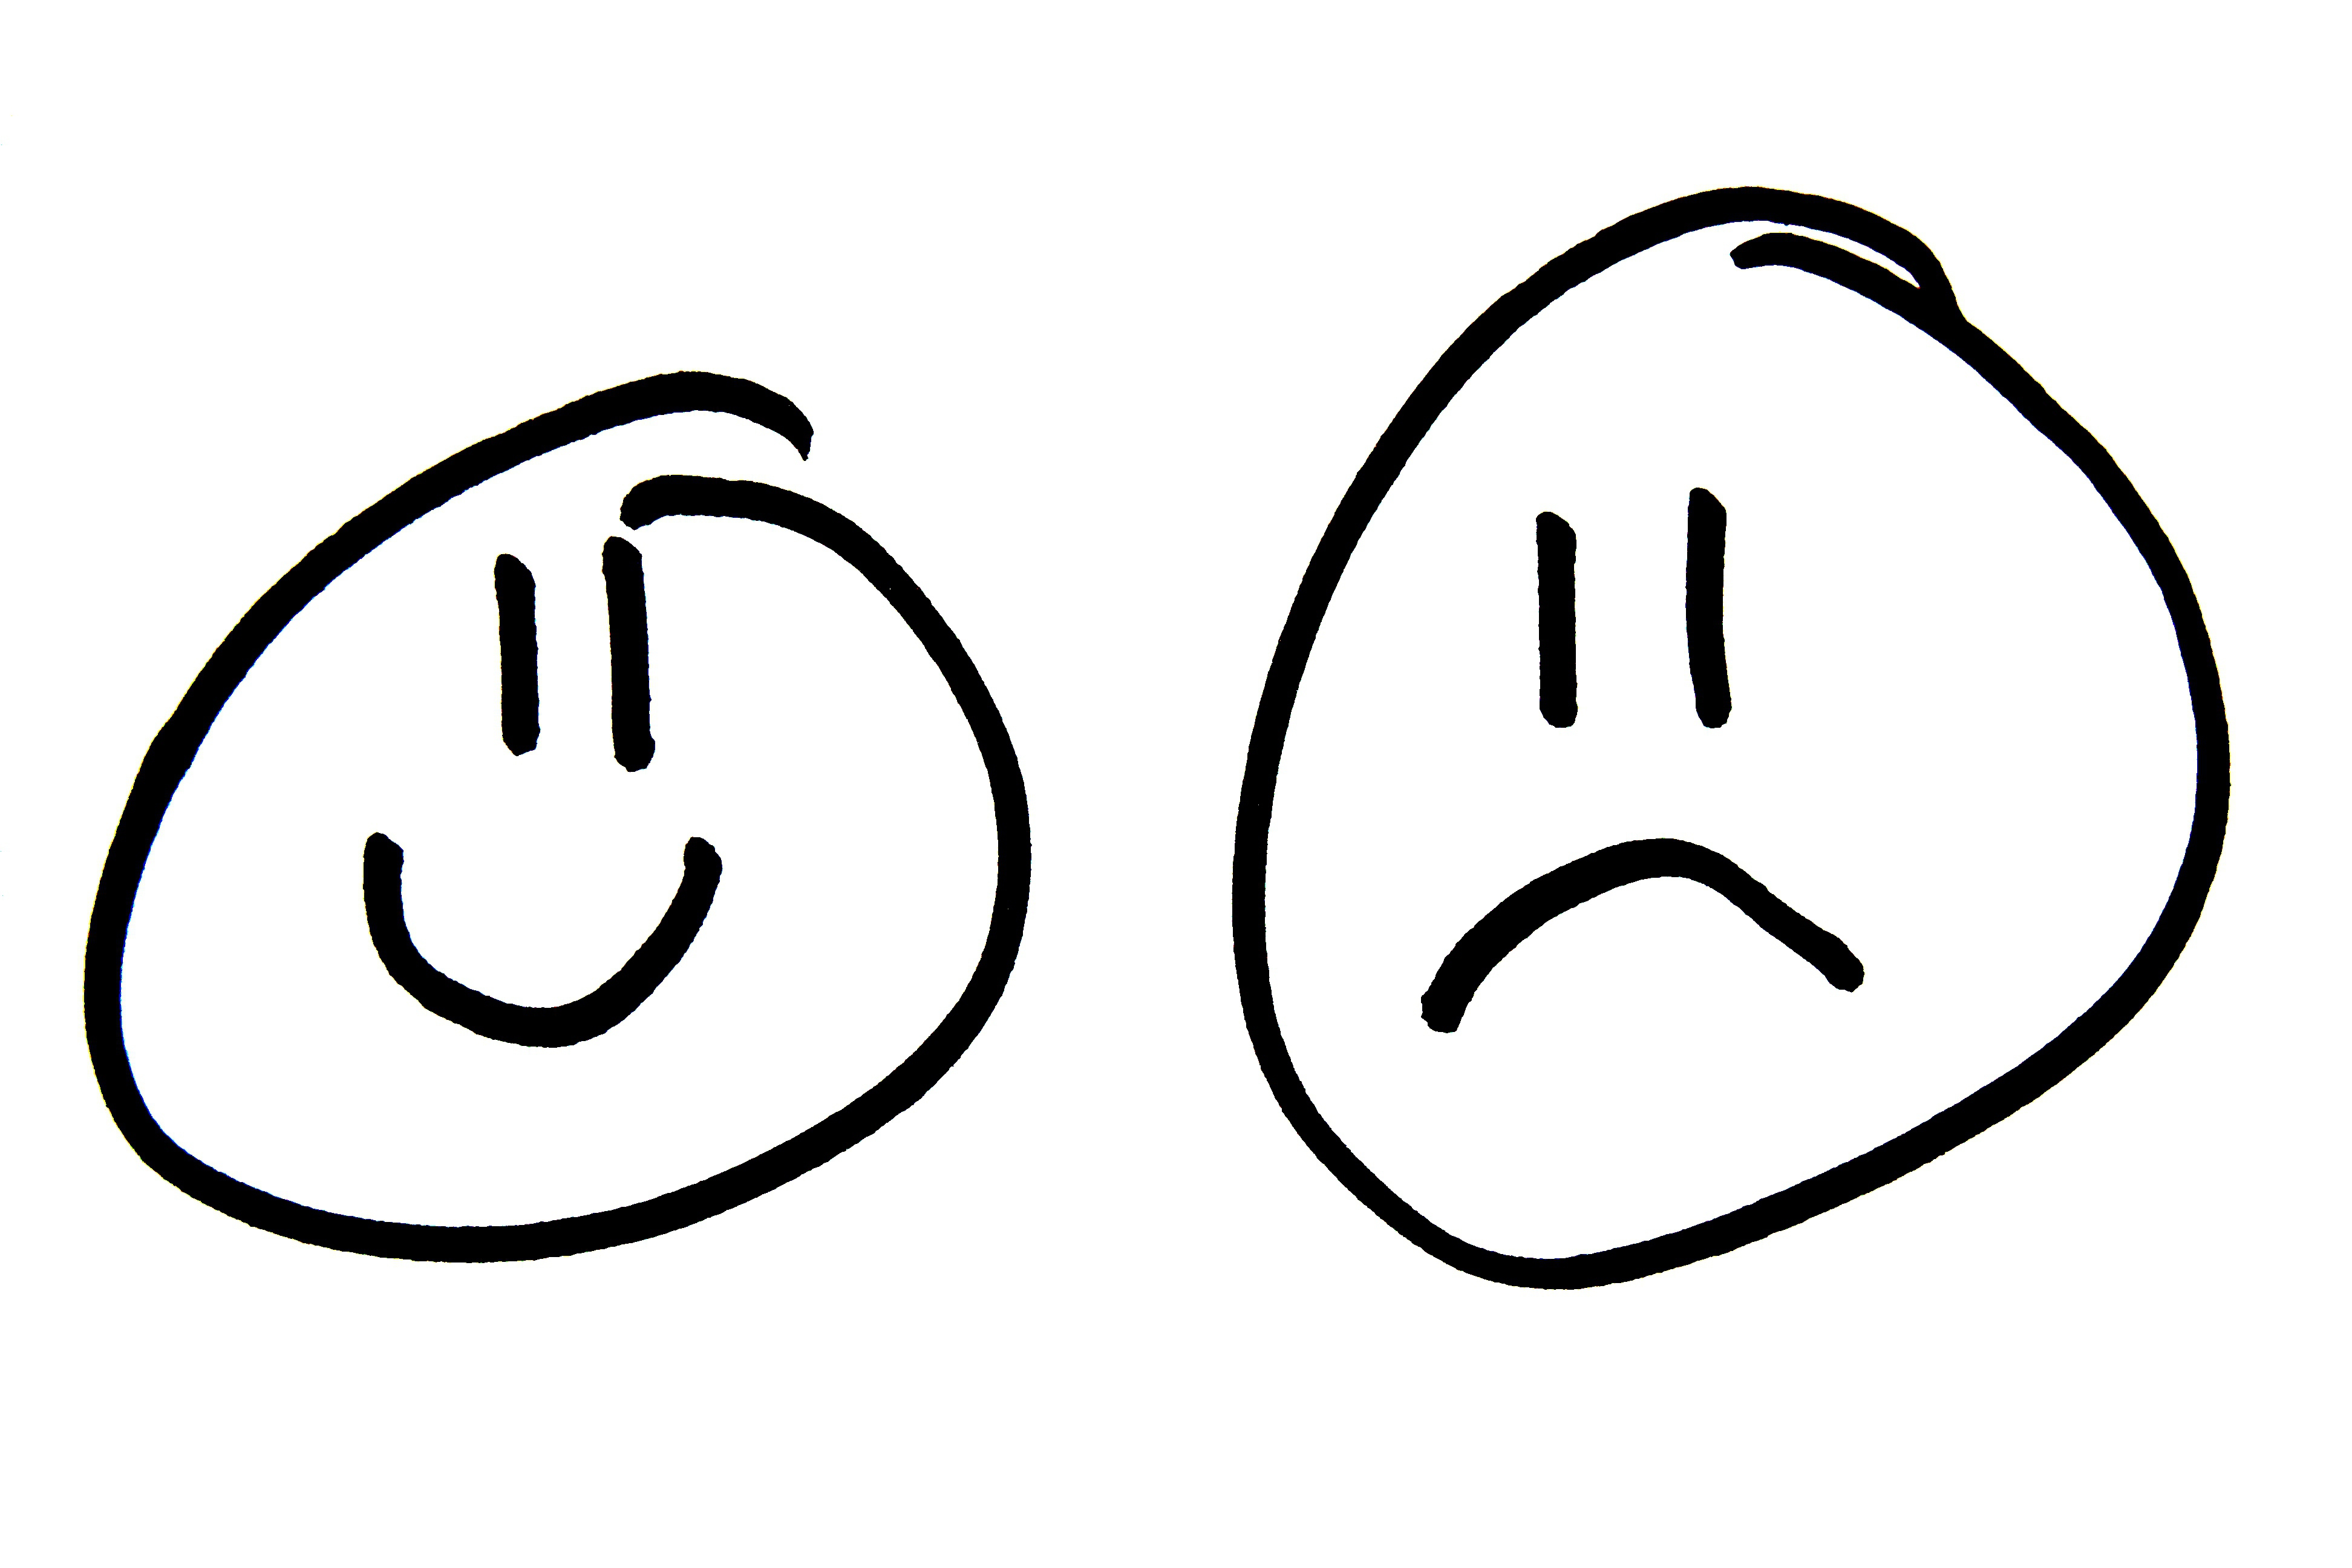 Frown to smile clipart jpg transparent download Free Frowning Smiley Face, Download Free Clip Art, Free Clip Art on ... jpg transparent download